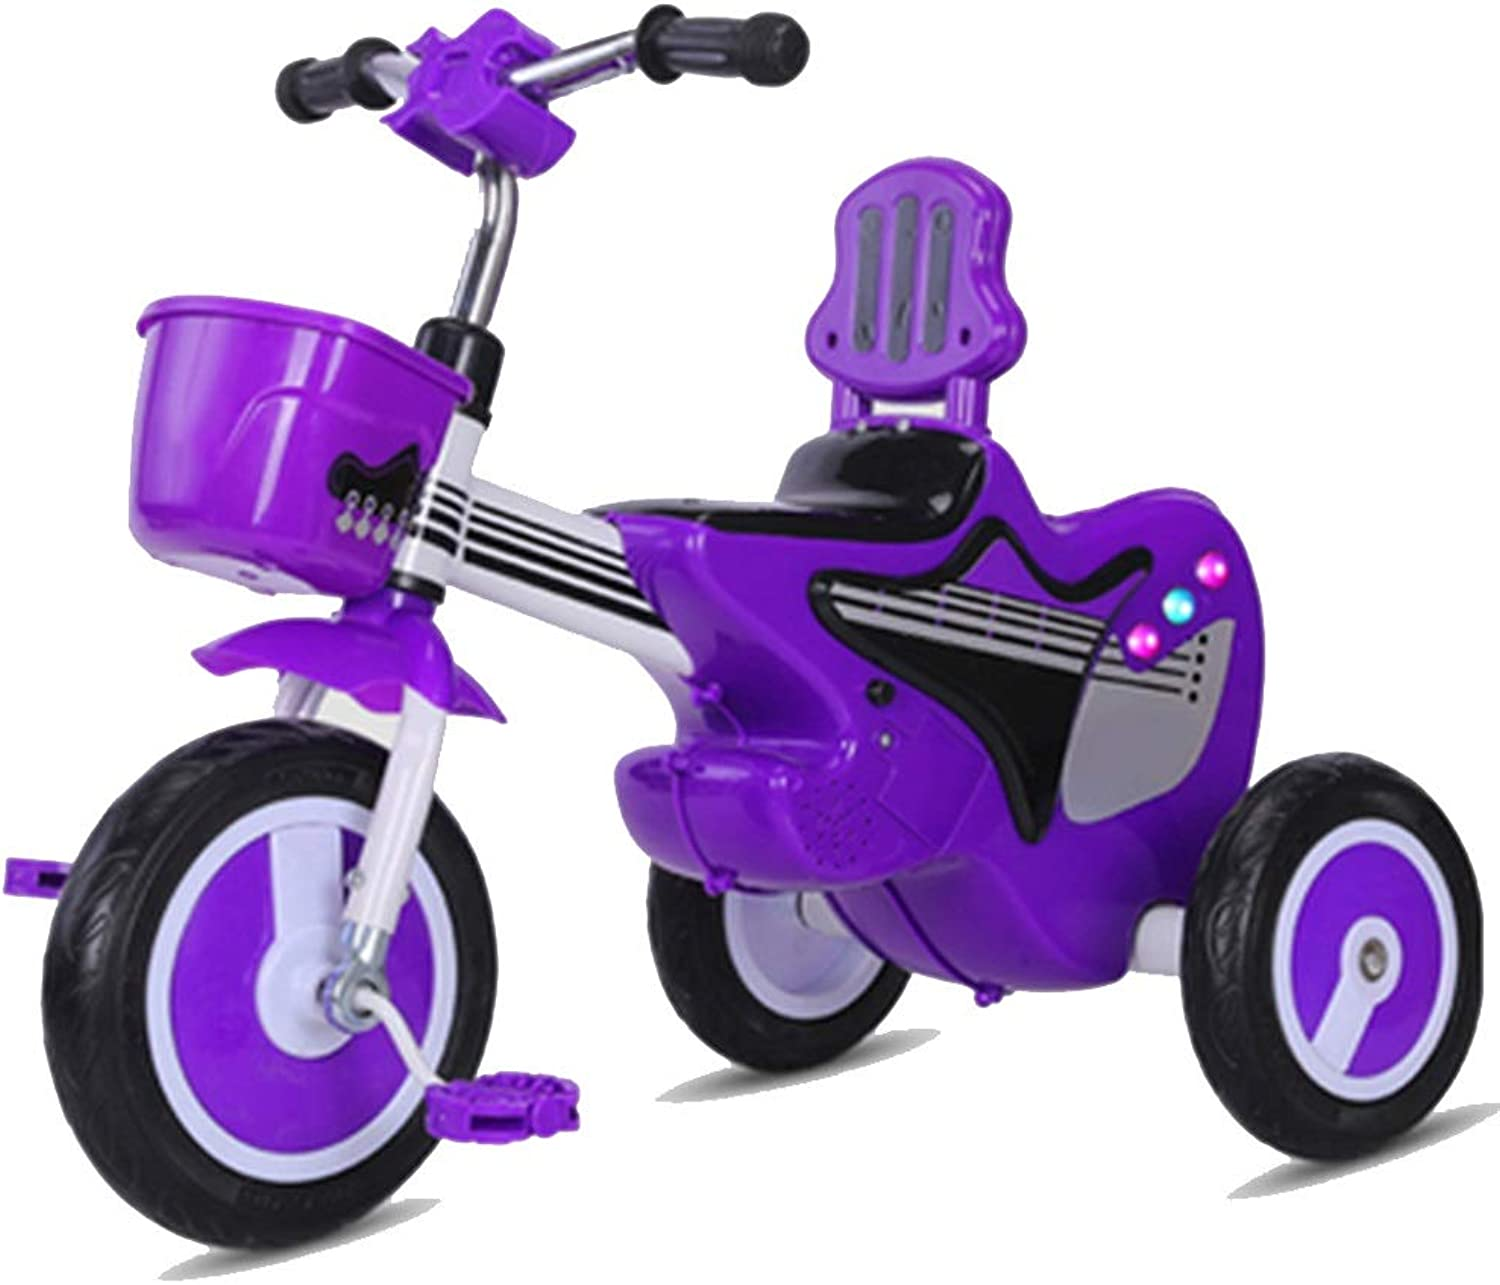 YUMEIGE Kids' Tricycles Kids Tricycle with Push Handle Kids Pedal Bicycle with Music 15 Years Old Load Weight 40kg Baby Carriage Boys Girls Toy Car Available